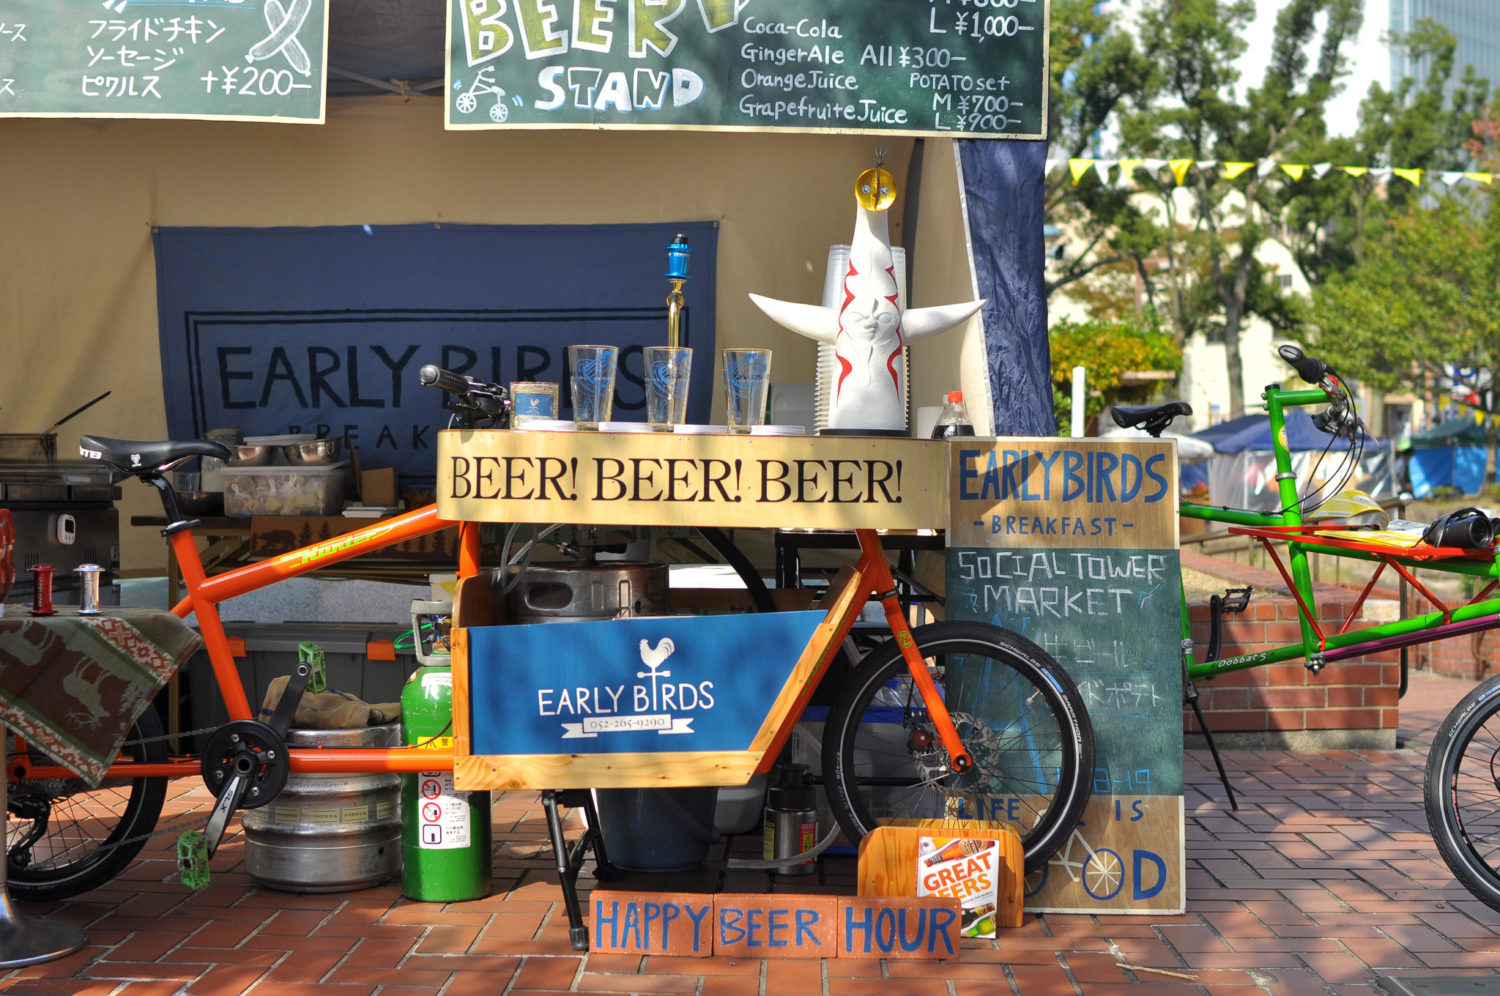 Bike to トヨロック BEER BIKE pinefieldsmarket